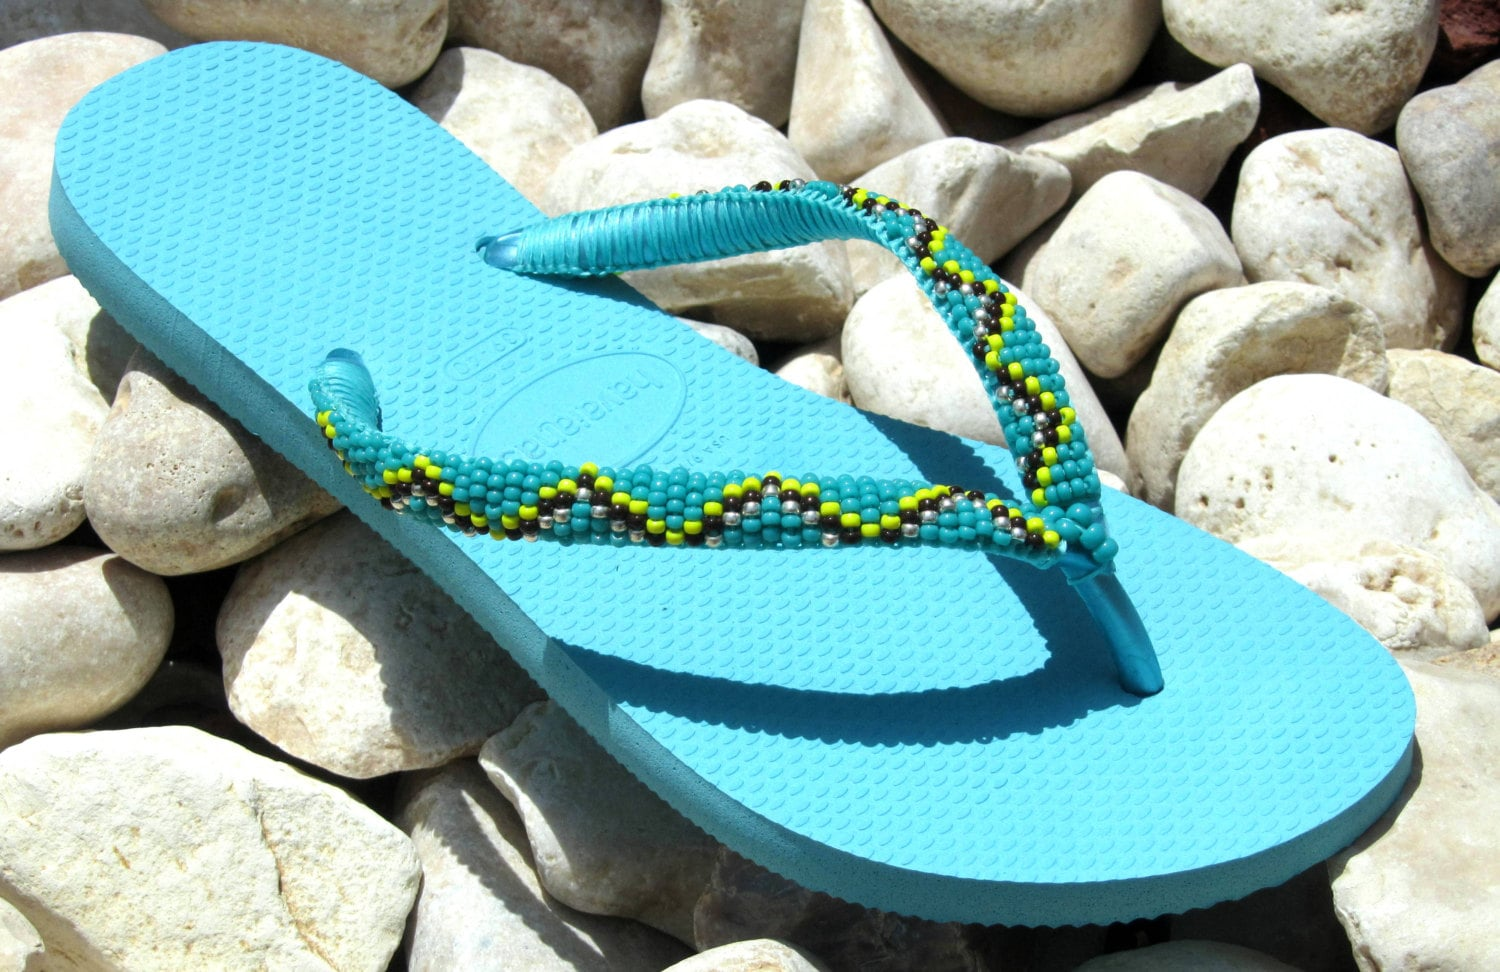 Turquoise Shoes Beaded Sandals Hippie Chic Flip Flops Flat -6020